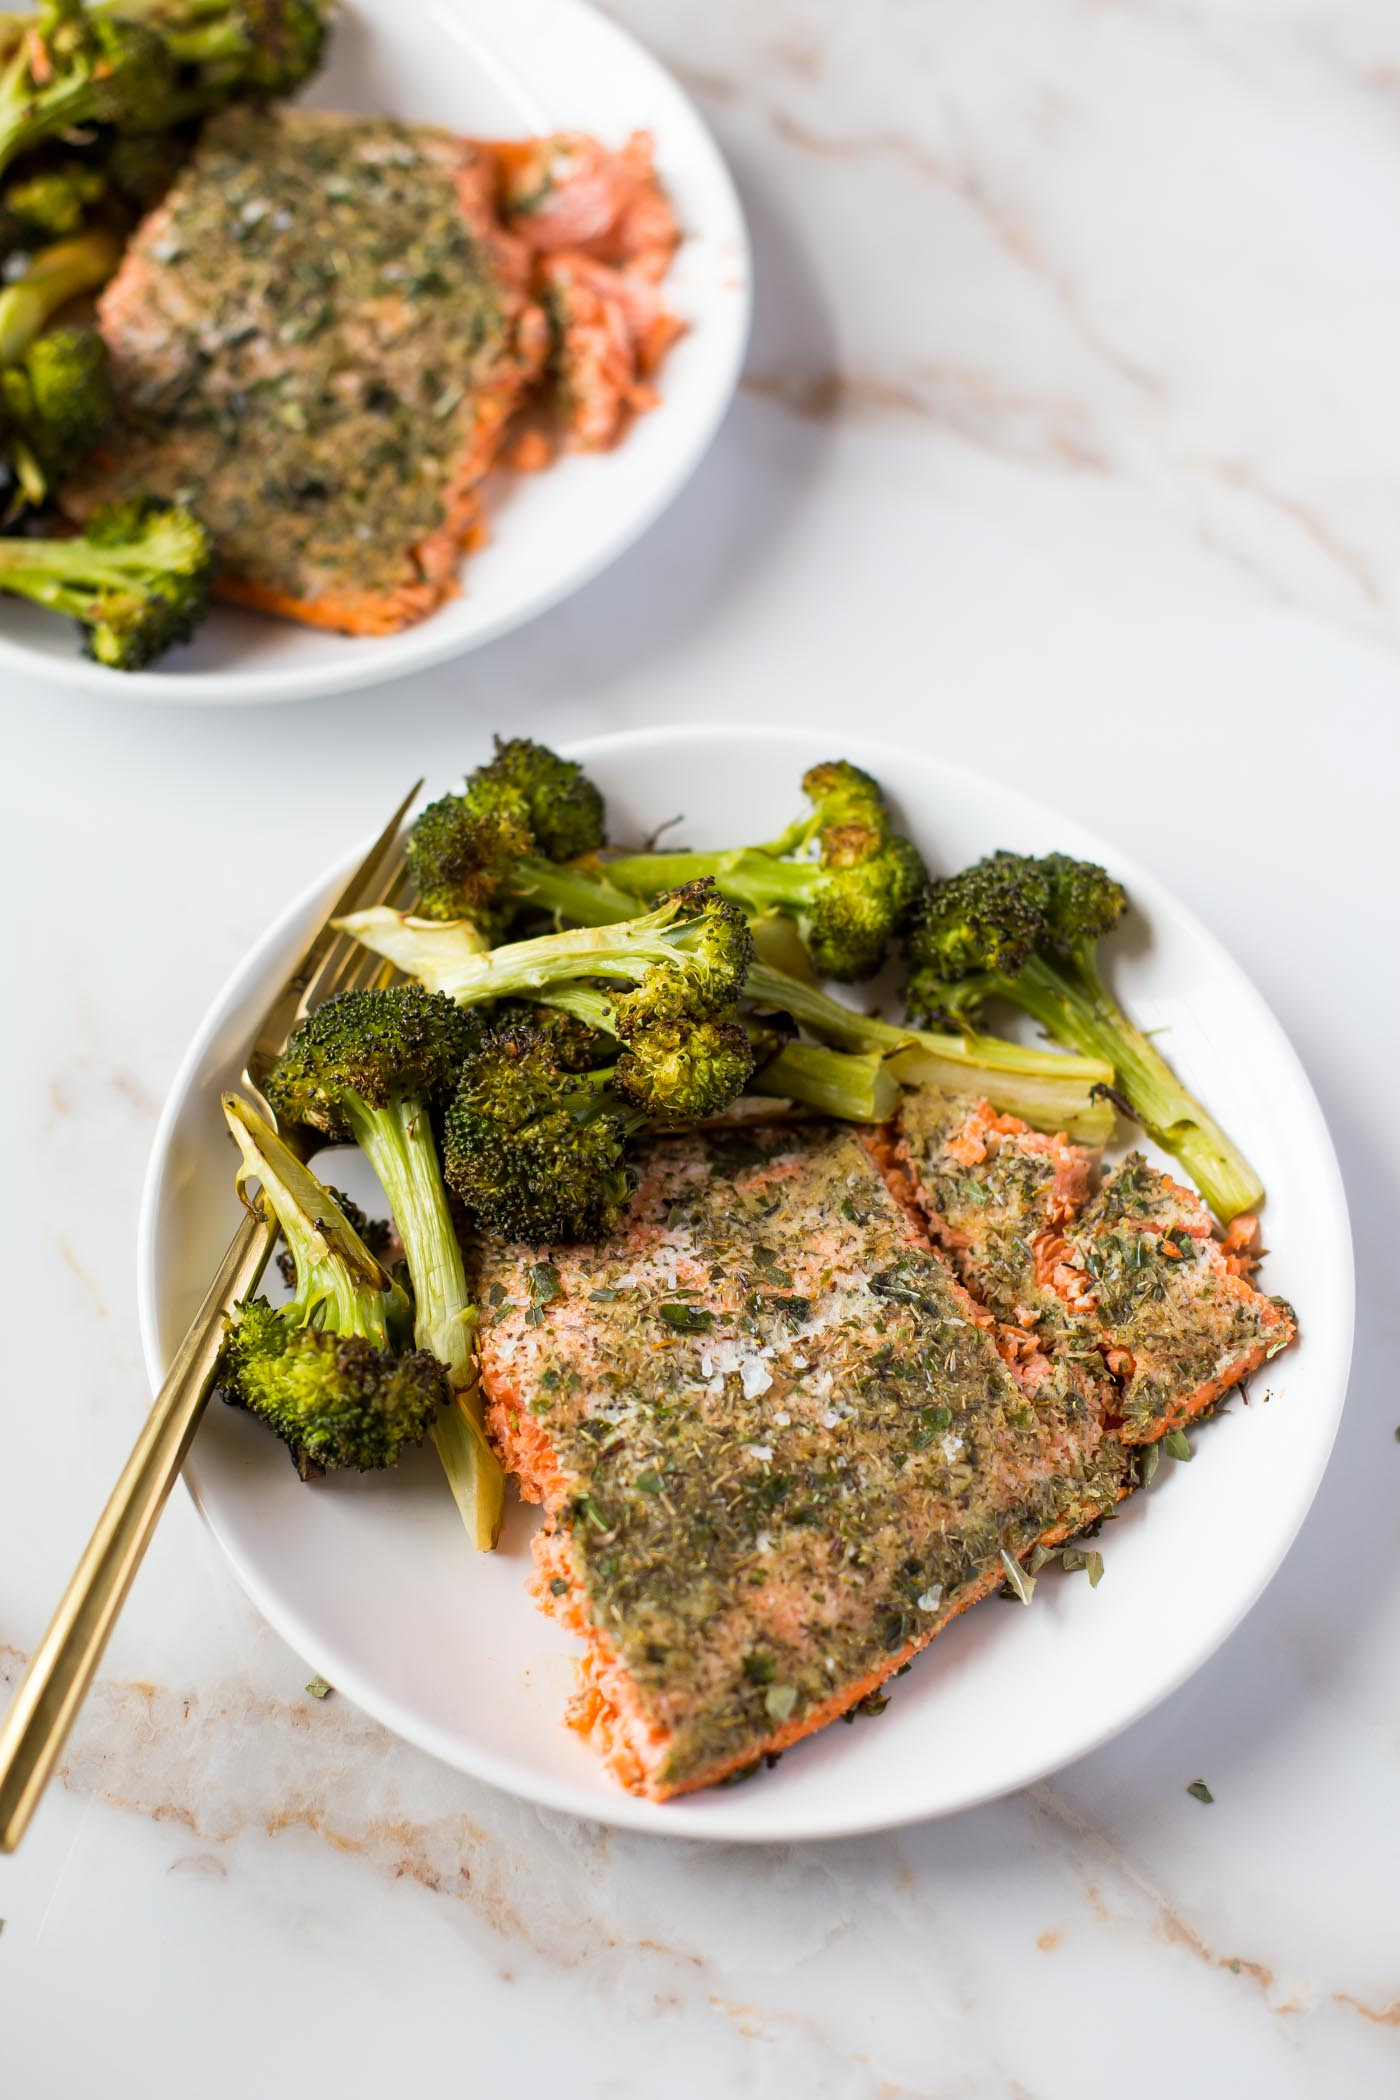 Two white plates with baked salmon and roasted broccoli on white background